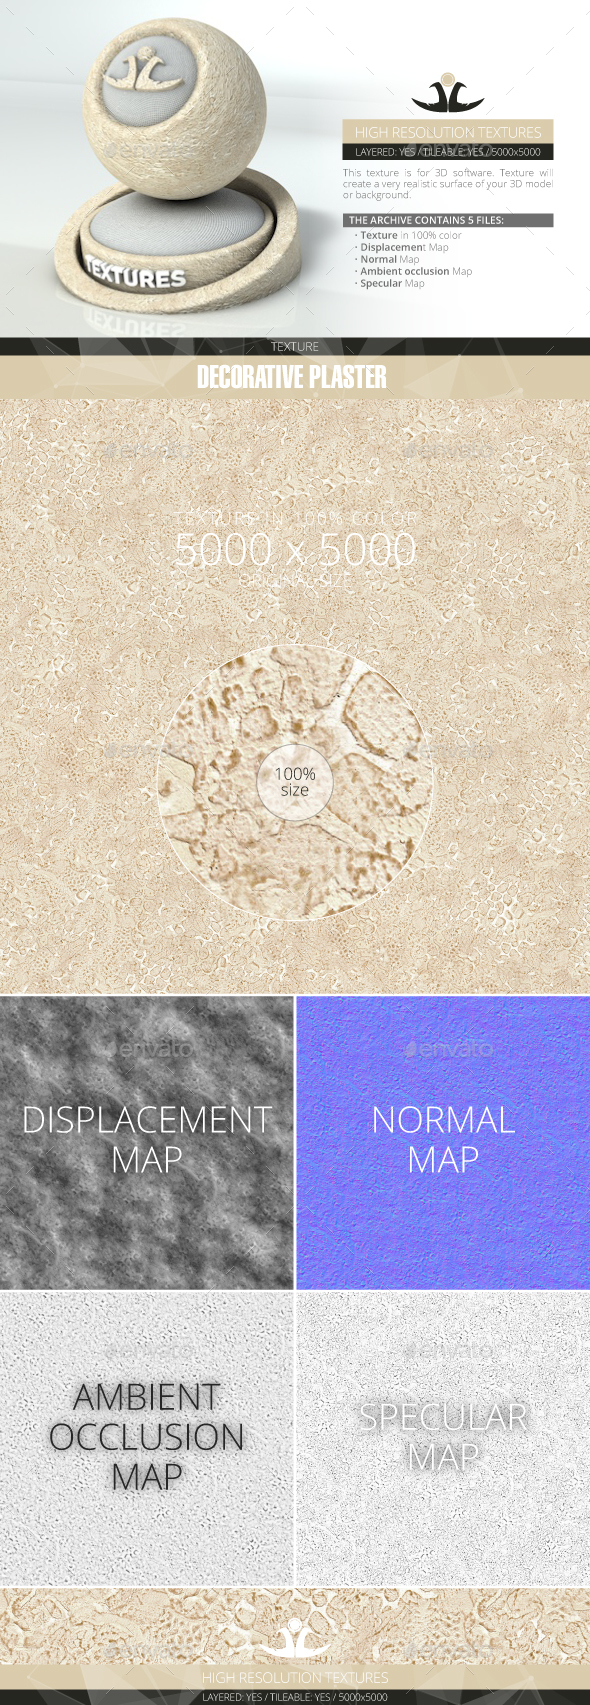 Decorative plaster 7 - 3DOcean Item for Sale